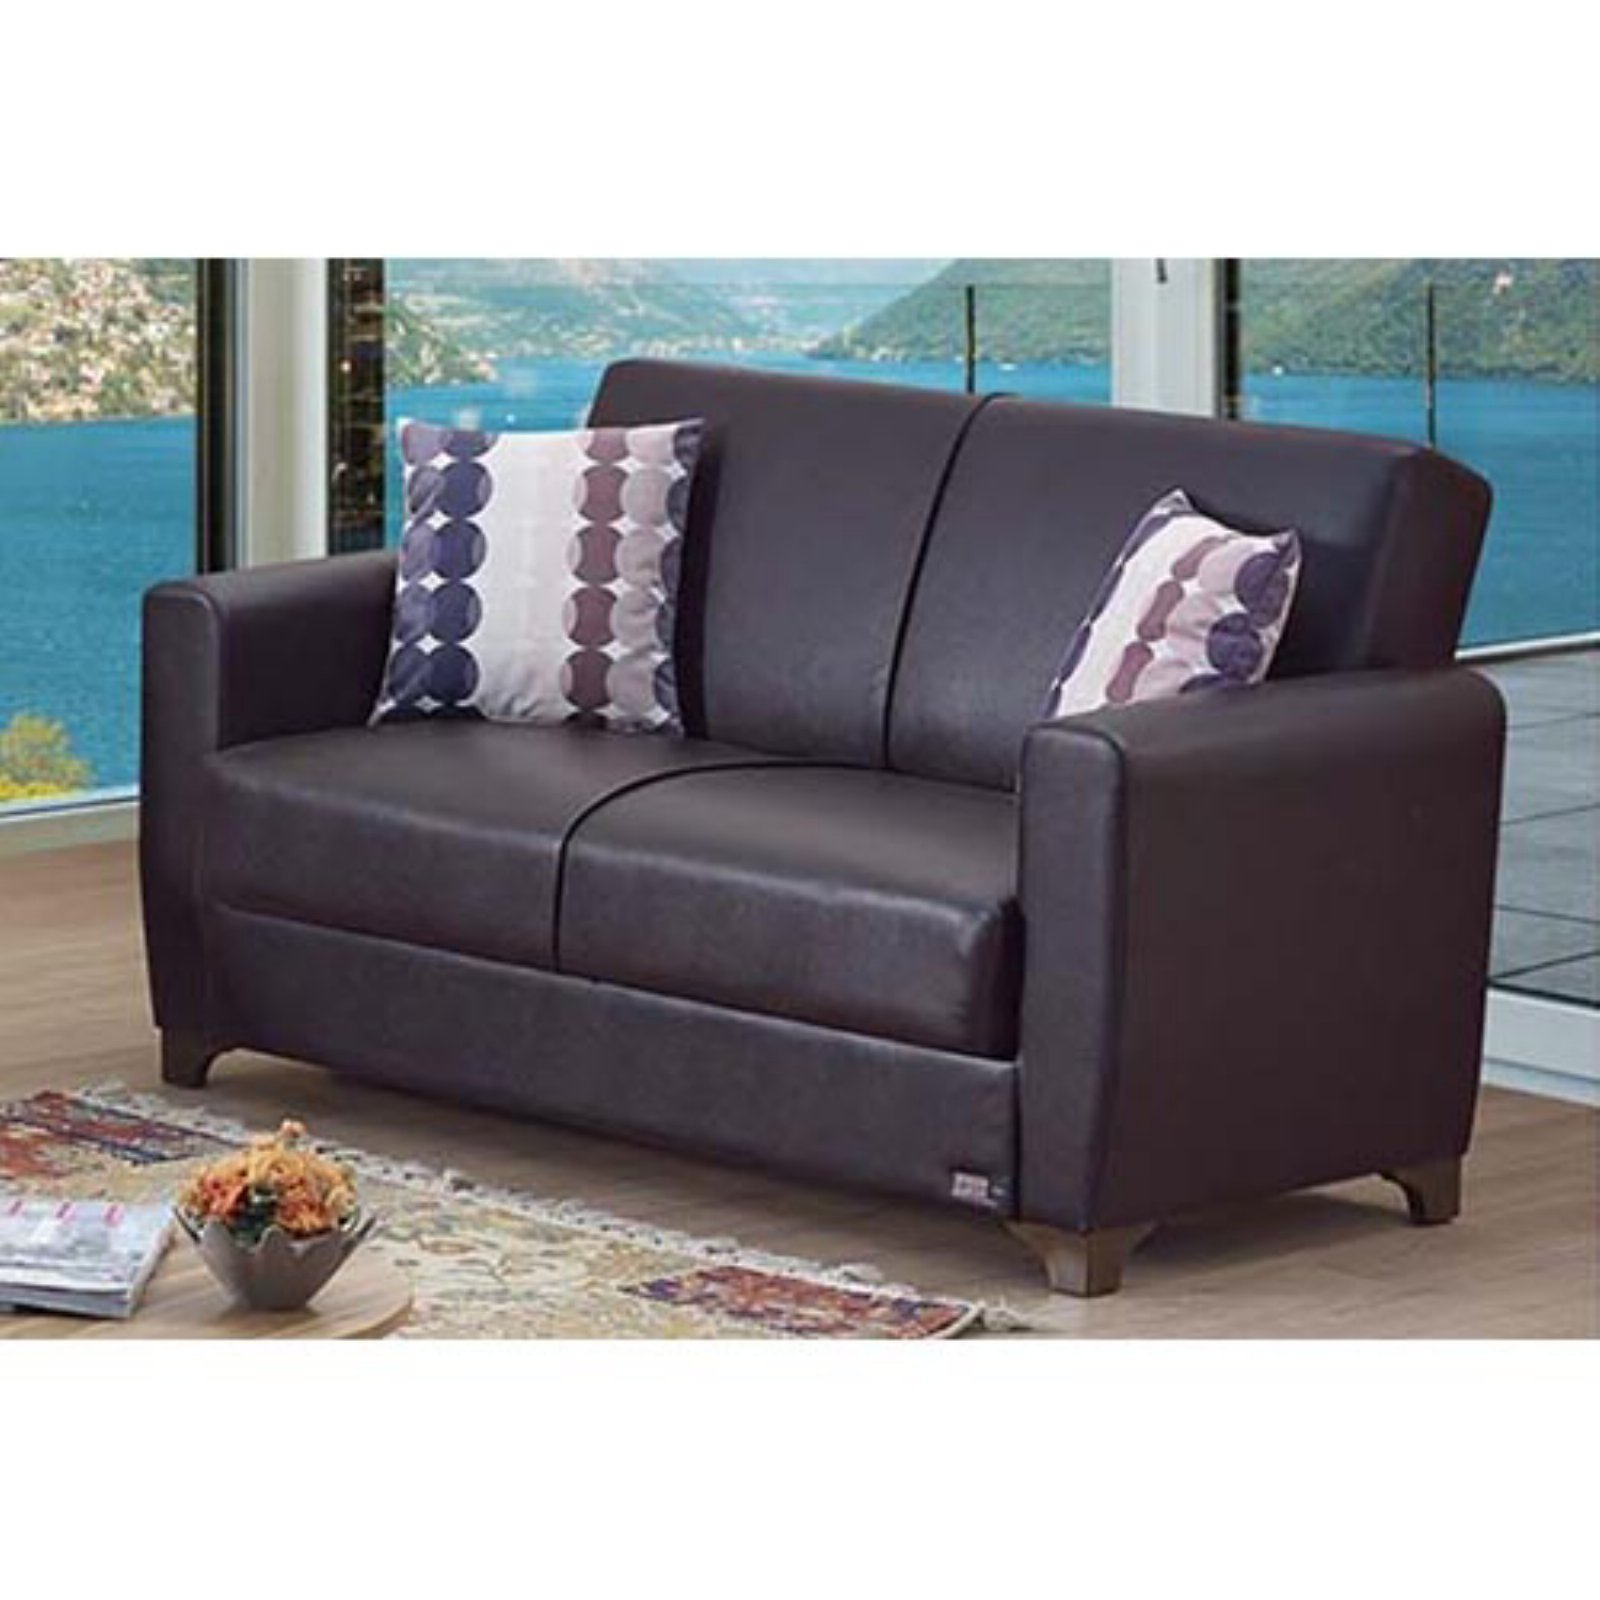 Empire Furniture USA Queens Convertible Loveseat